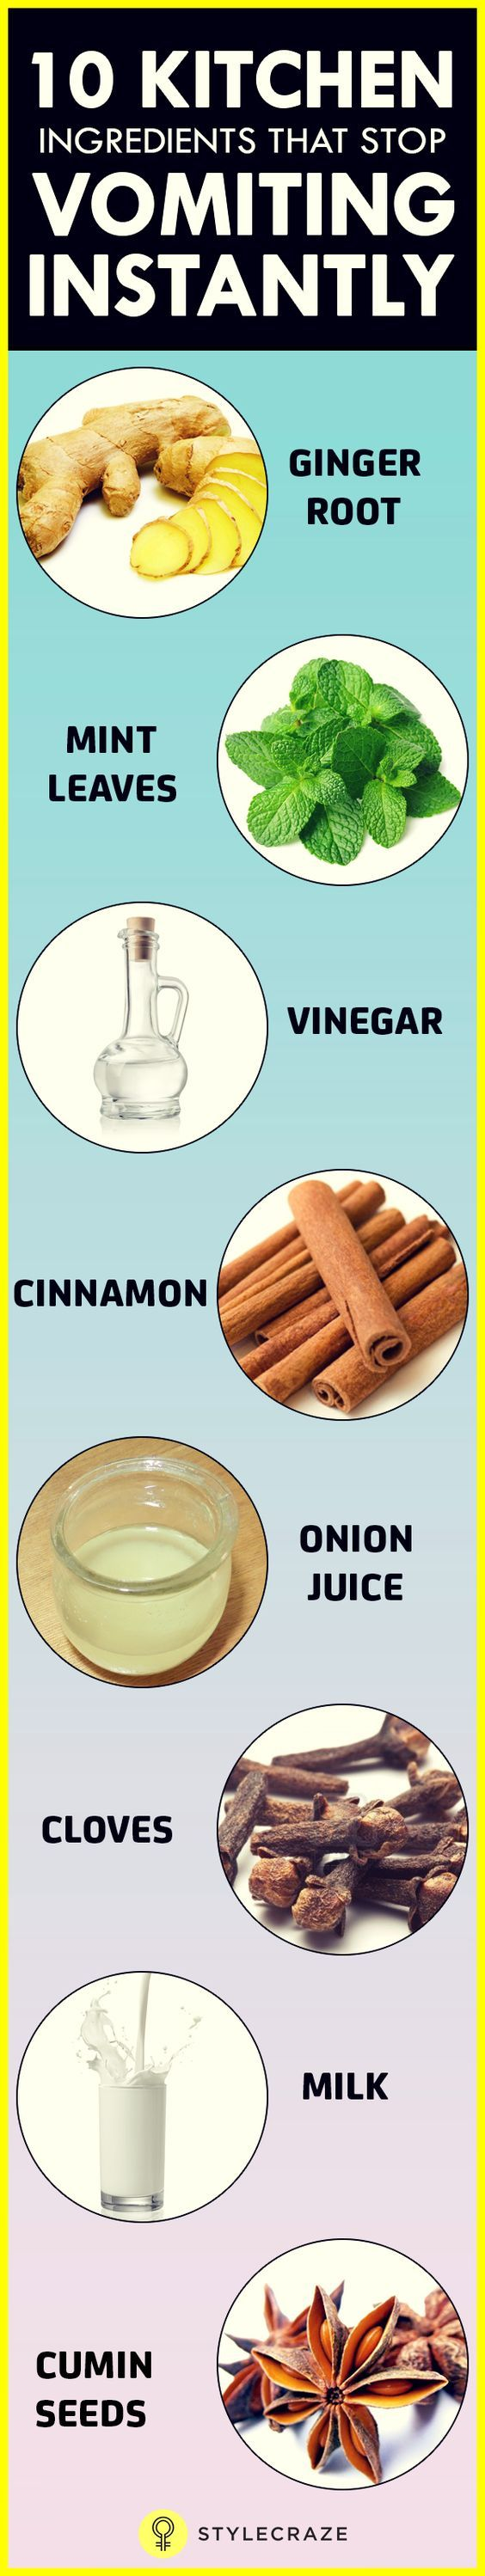 10 Effective Home Remedies To Stop Vomiting